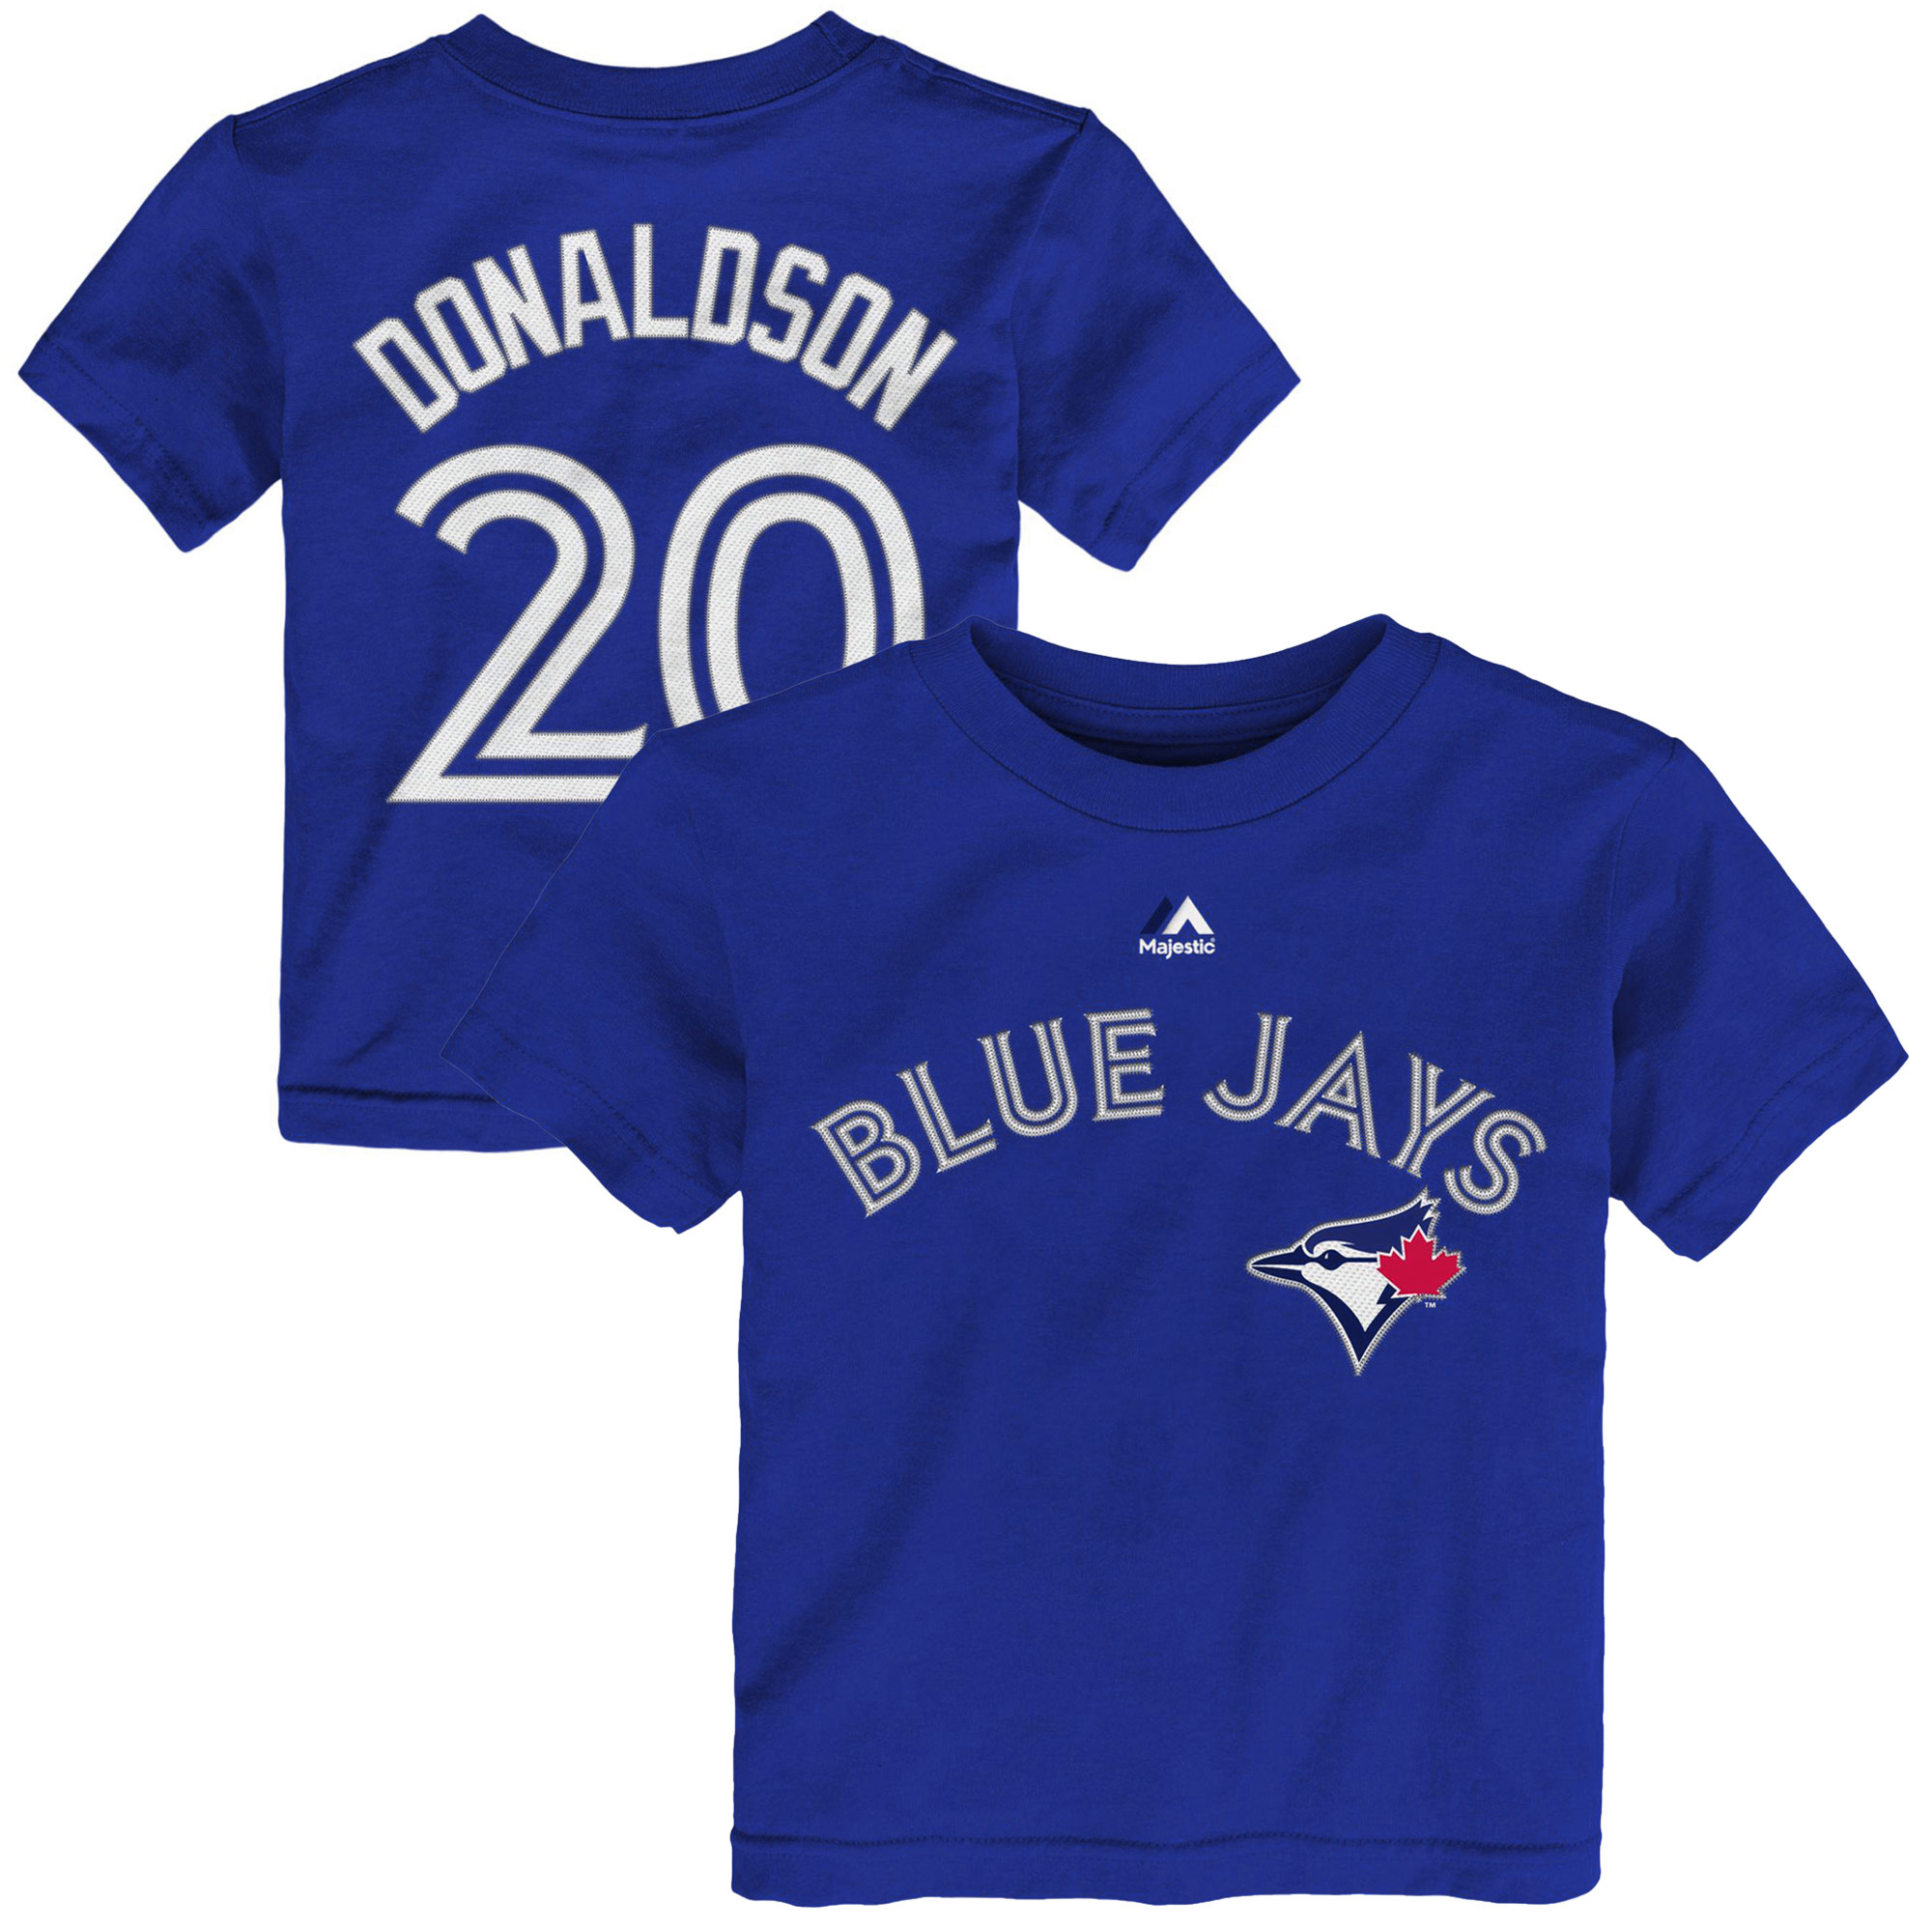 Josh Donaldson Toronto Blue Jays Toddler Name & Number T-Shirt - Royal